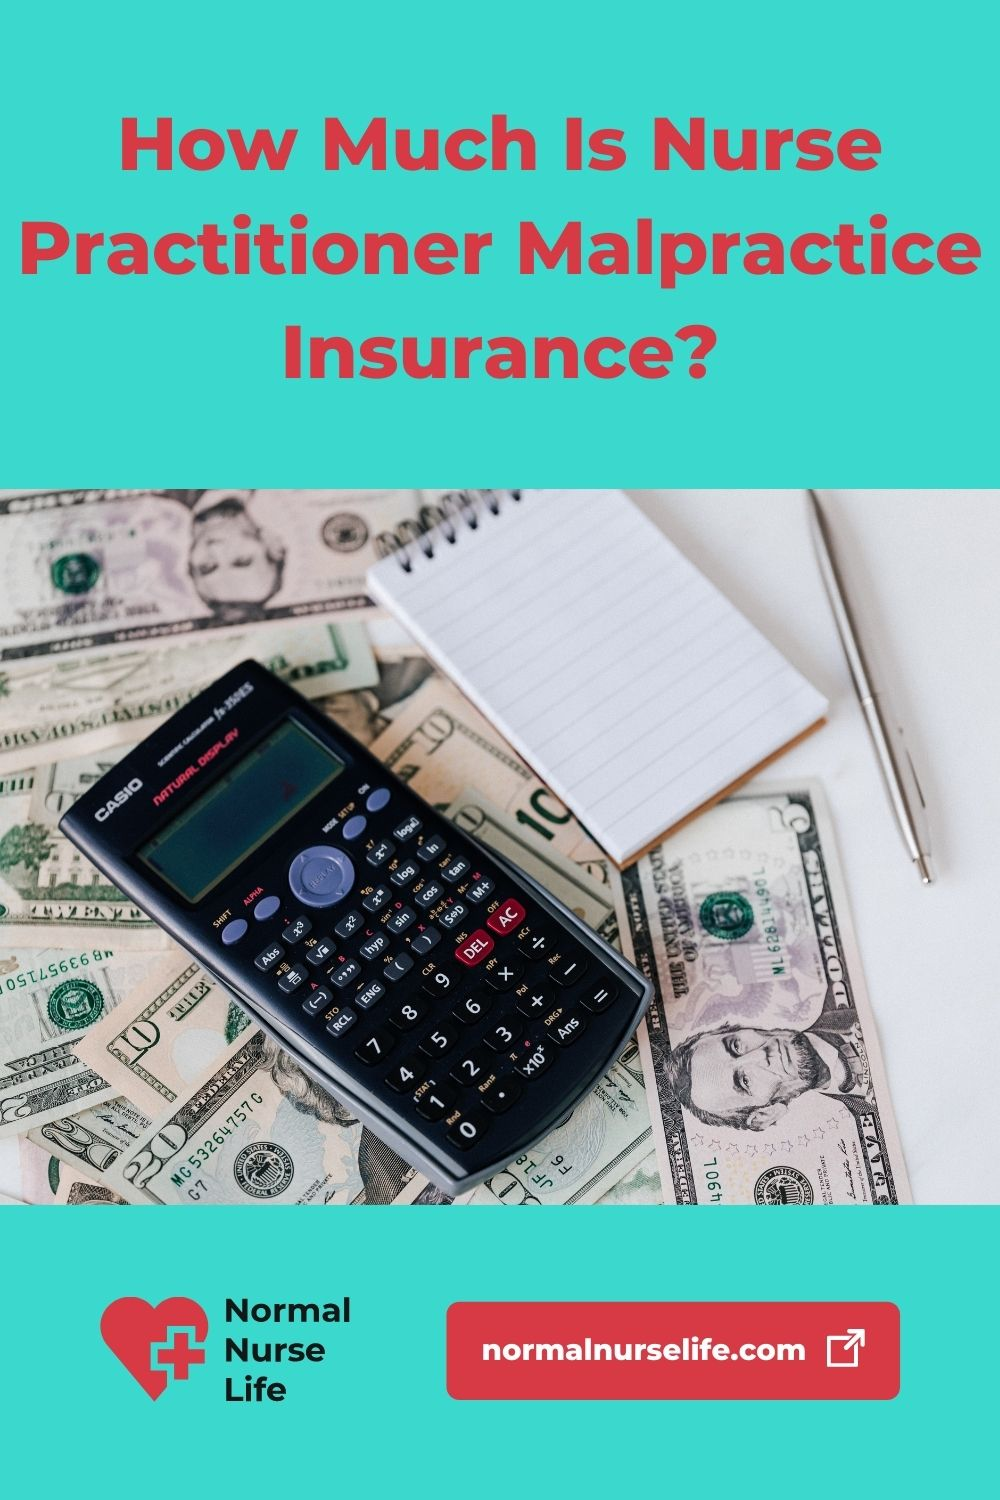 How much is nurse practitioner malpractice insurance